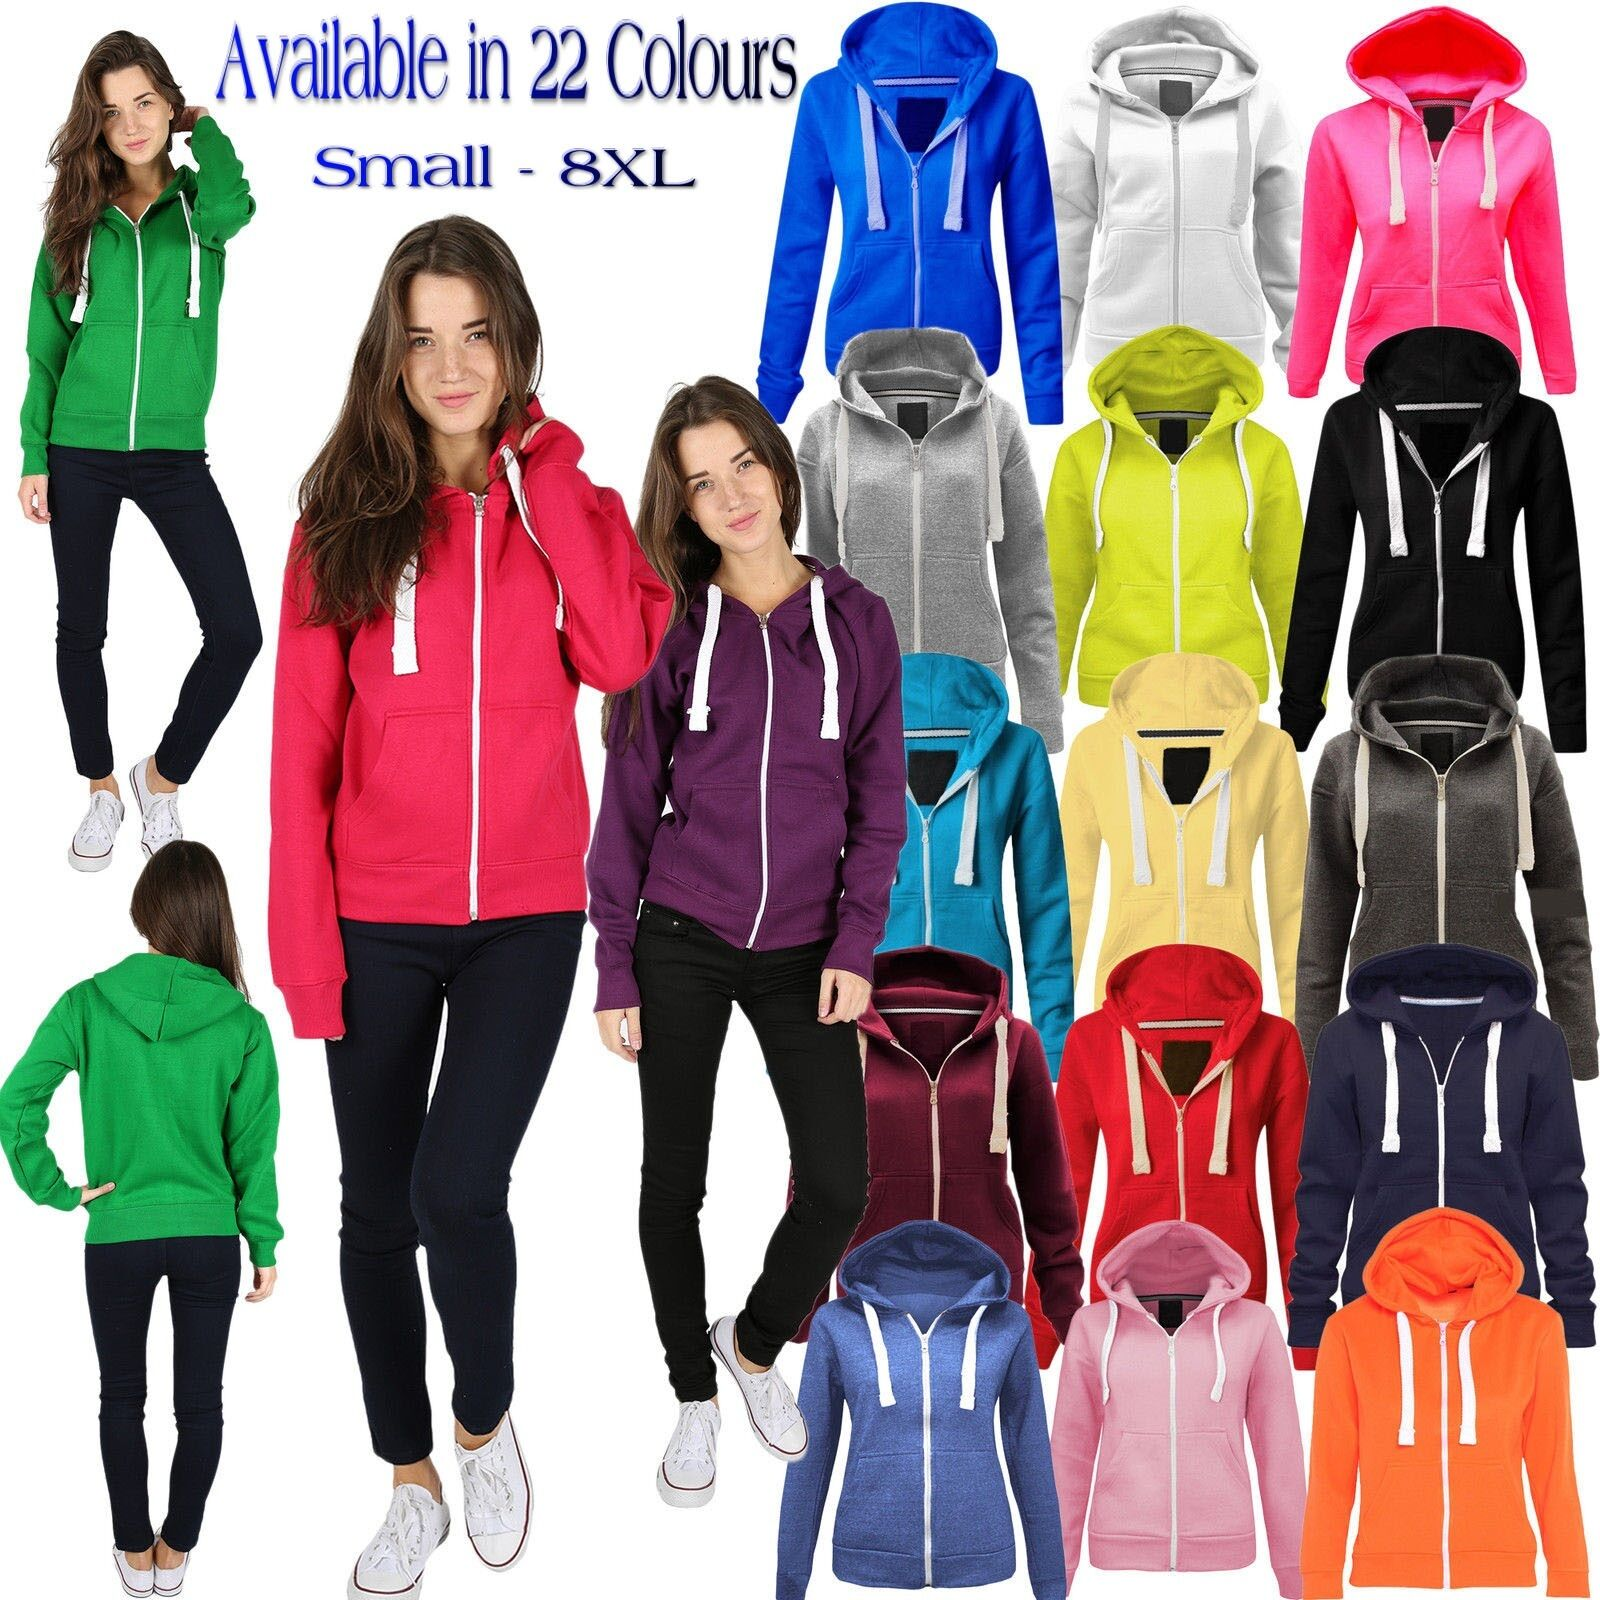 Womens Fleece PLAIN ZIP HOODIE Plus Size Zipper Sweatshirt Jacket Small-8XL 8-30